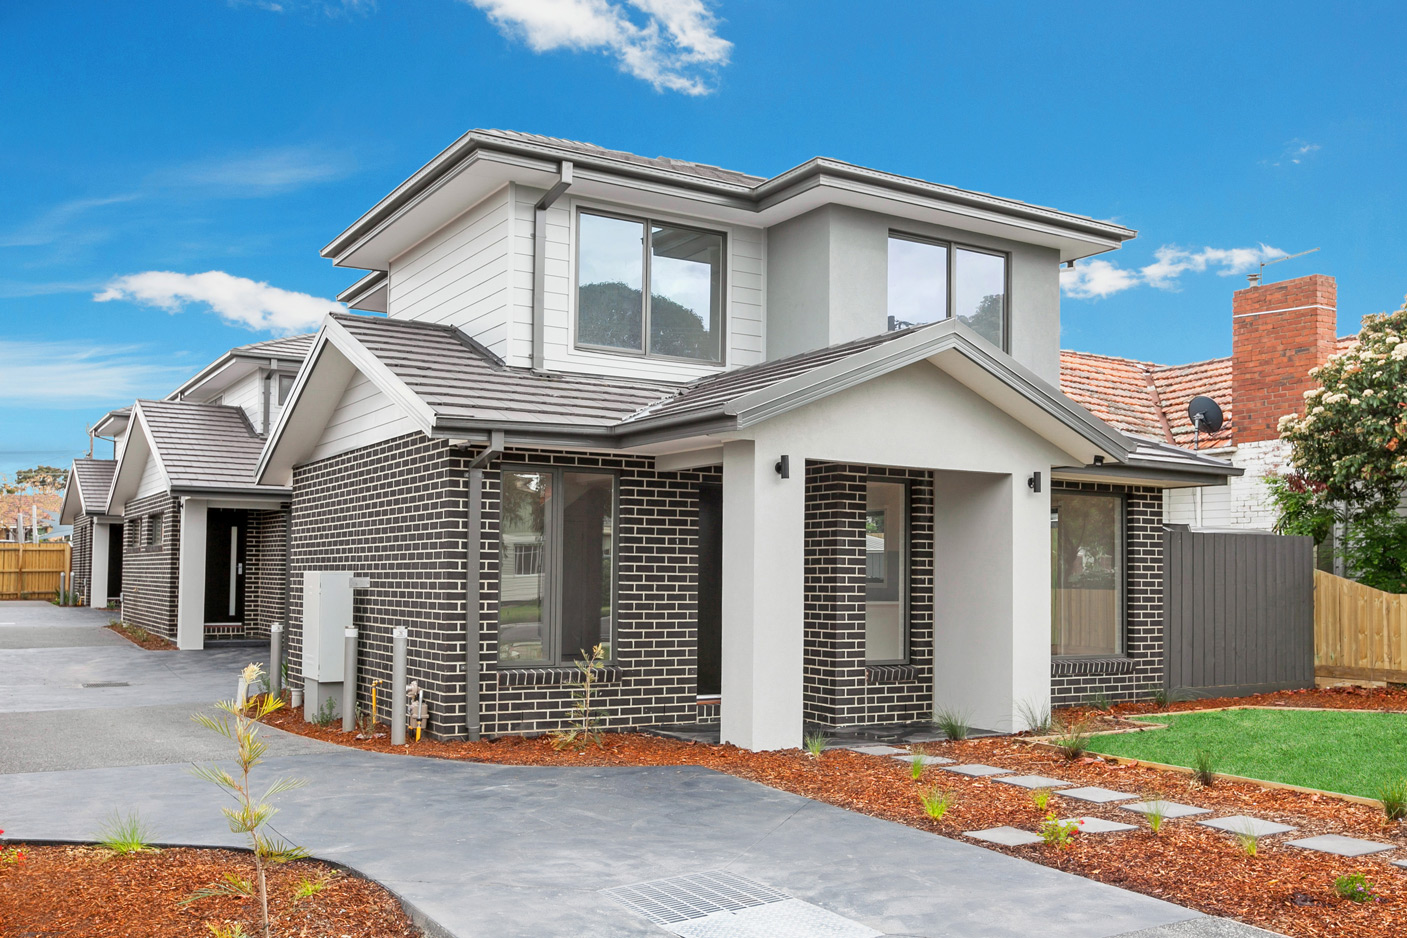 Townhouse Multi Unit Dual Occupancy Builder Melbourne